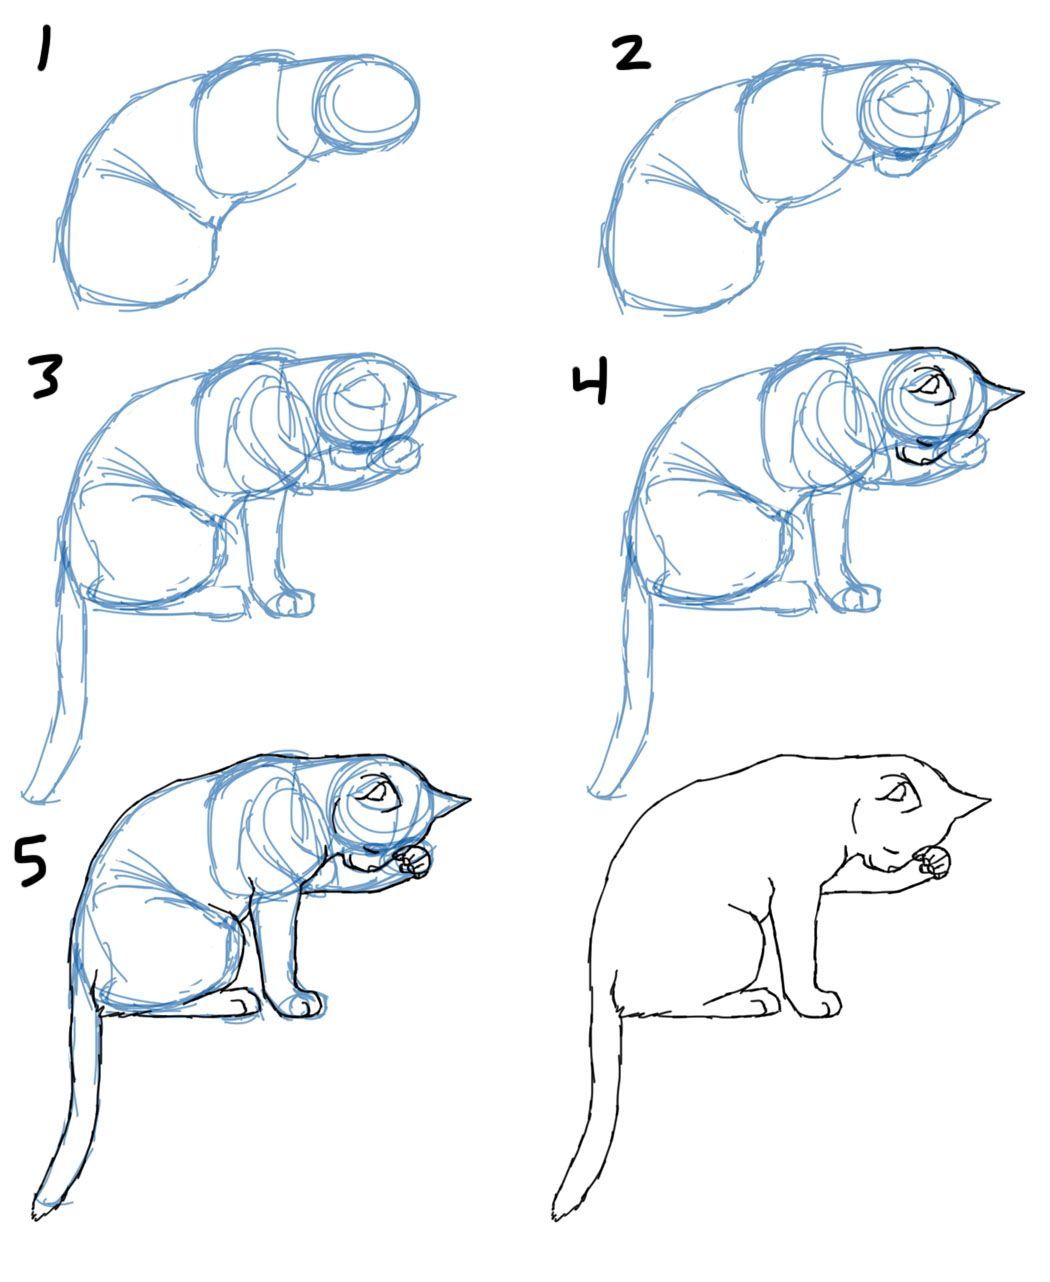 How to draw cat bodies in poses savanna williams gesture poses pinterest dessin dessin - Desin de chat ...